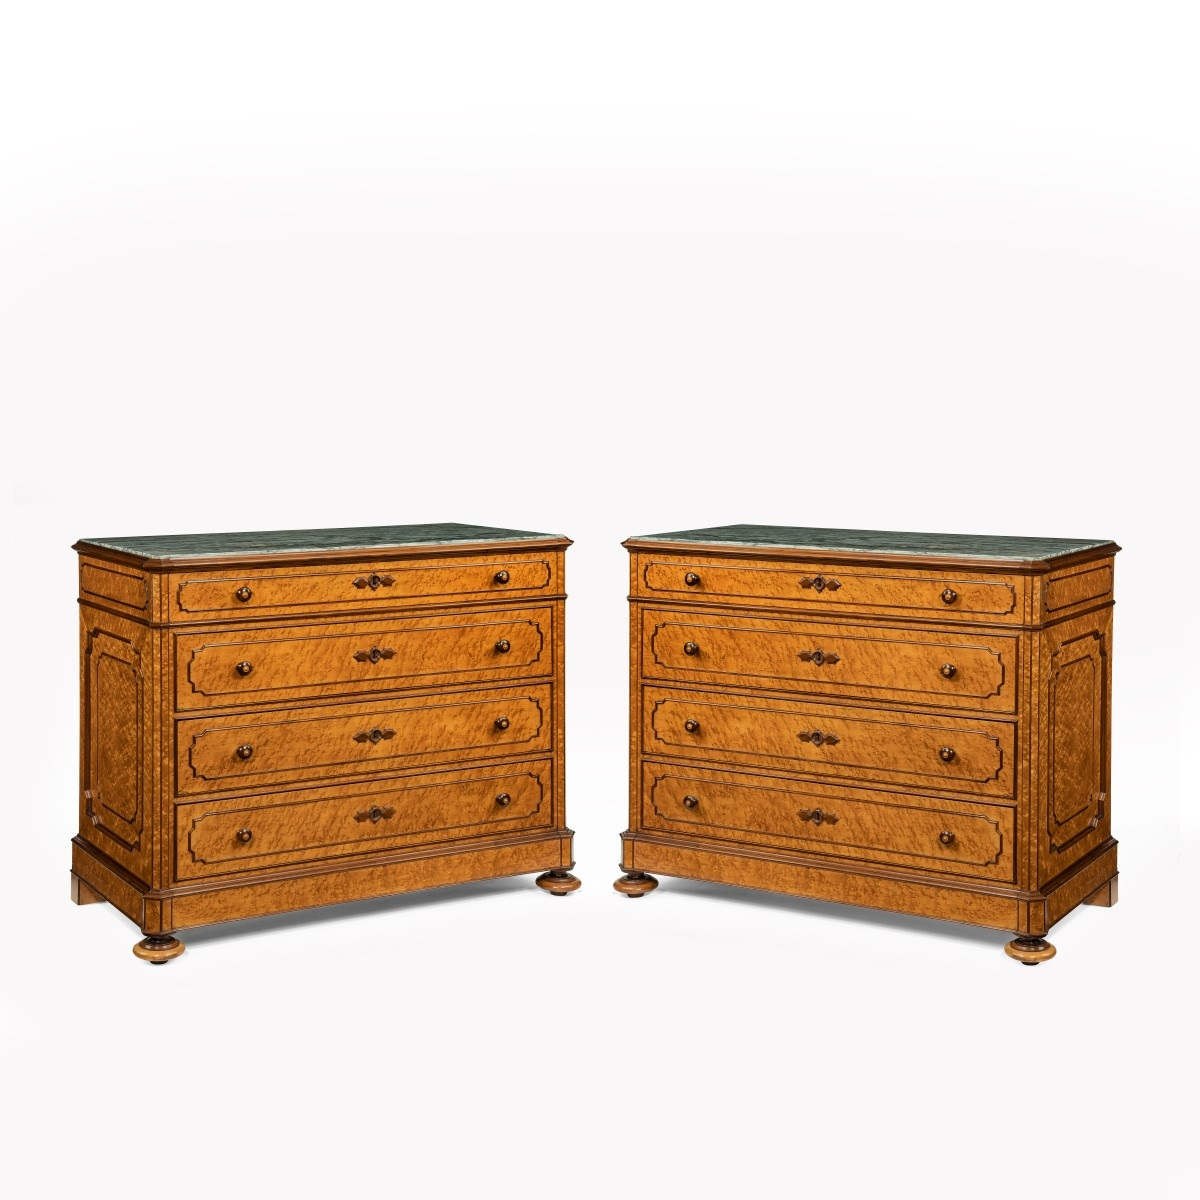 Pair of Commodes by Zignano and Picasso. Photo: Wick Antiques